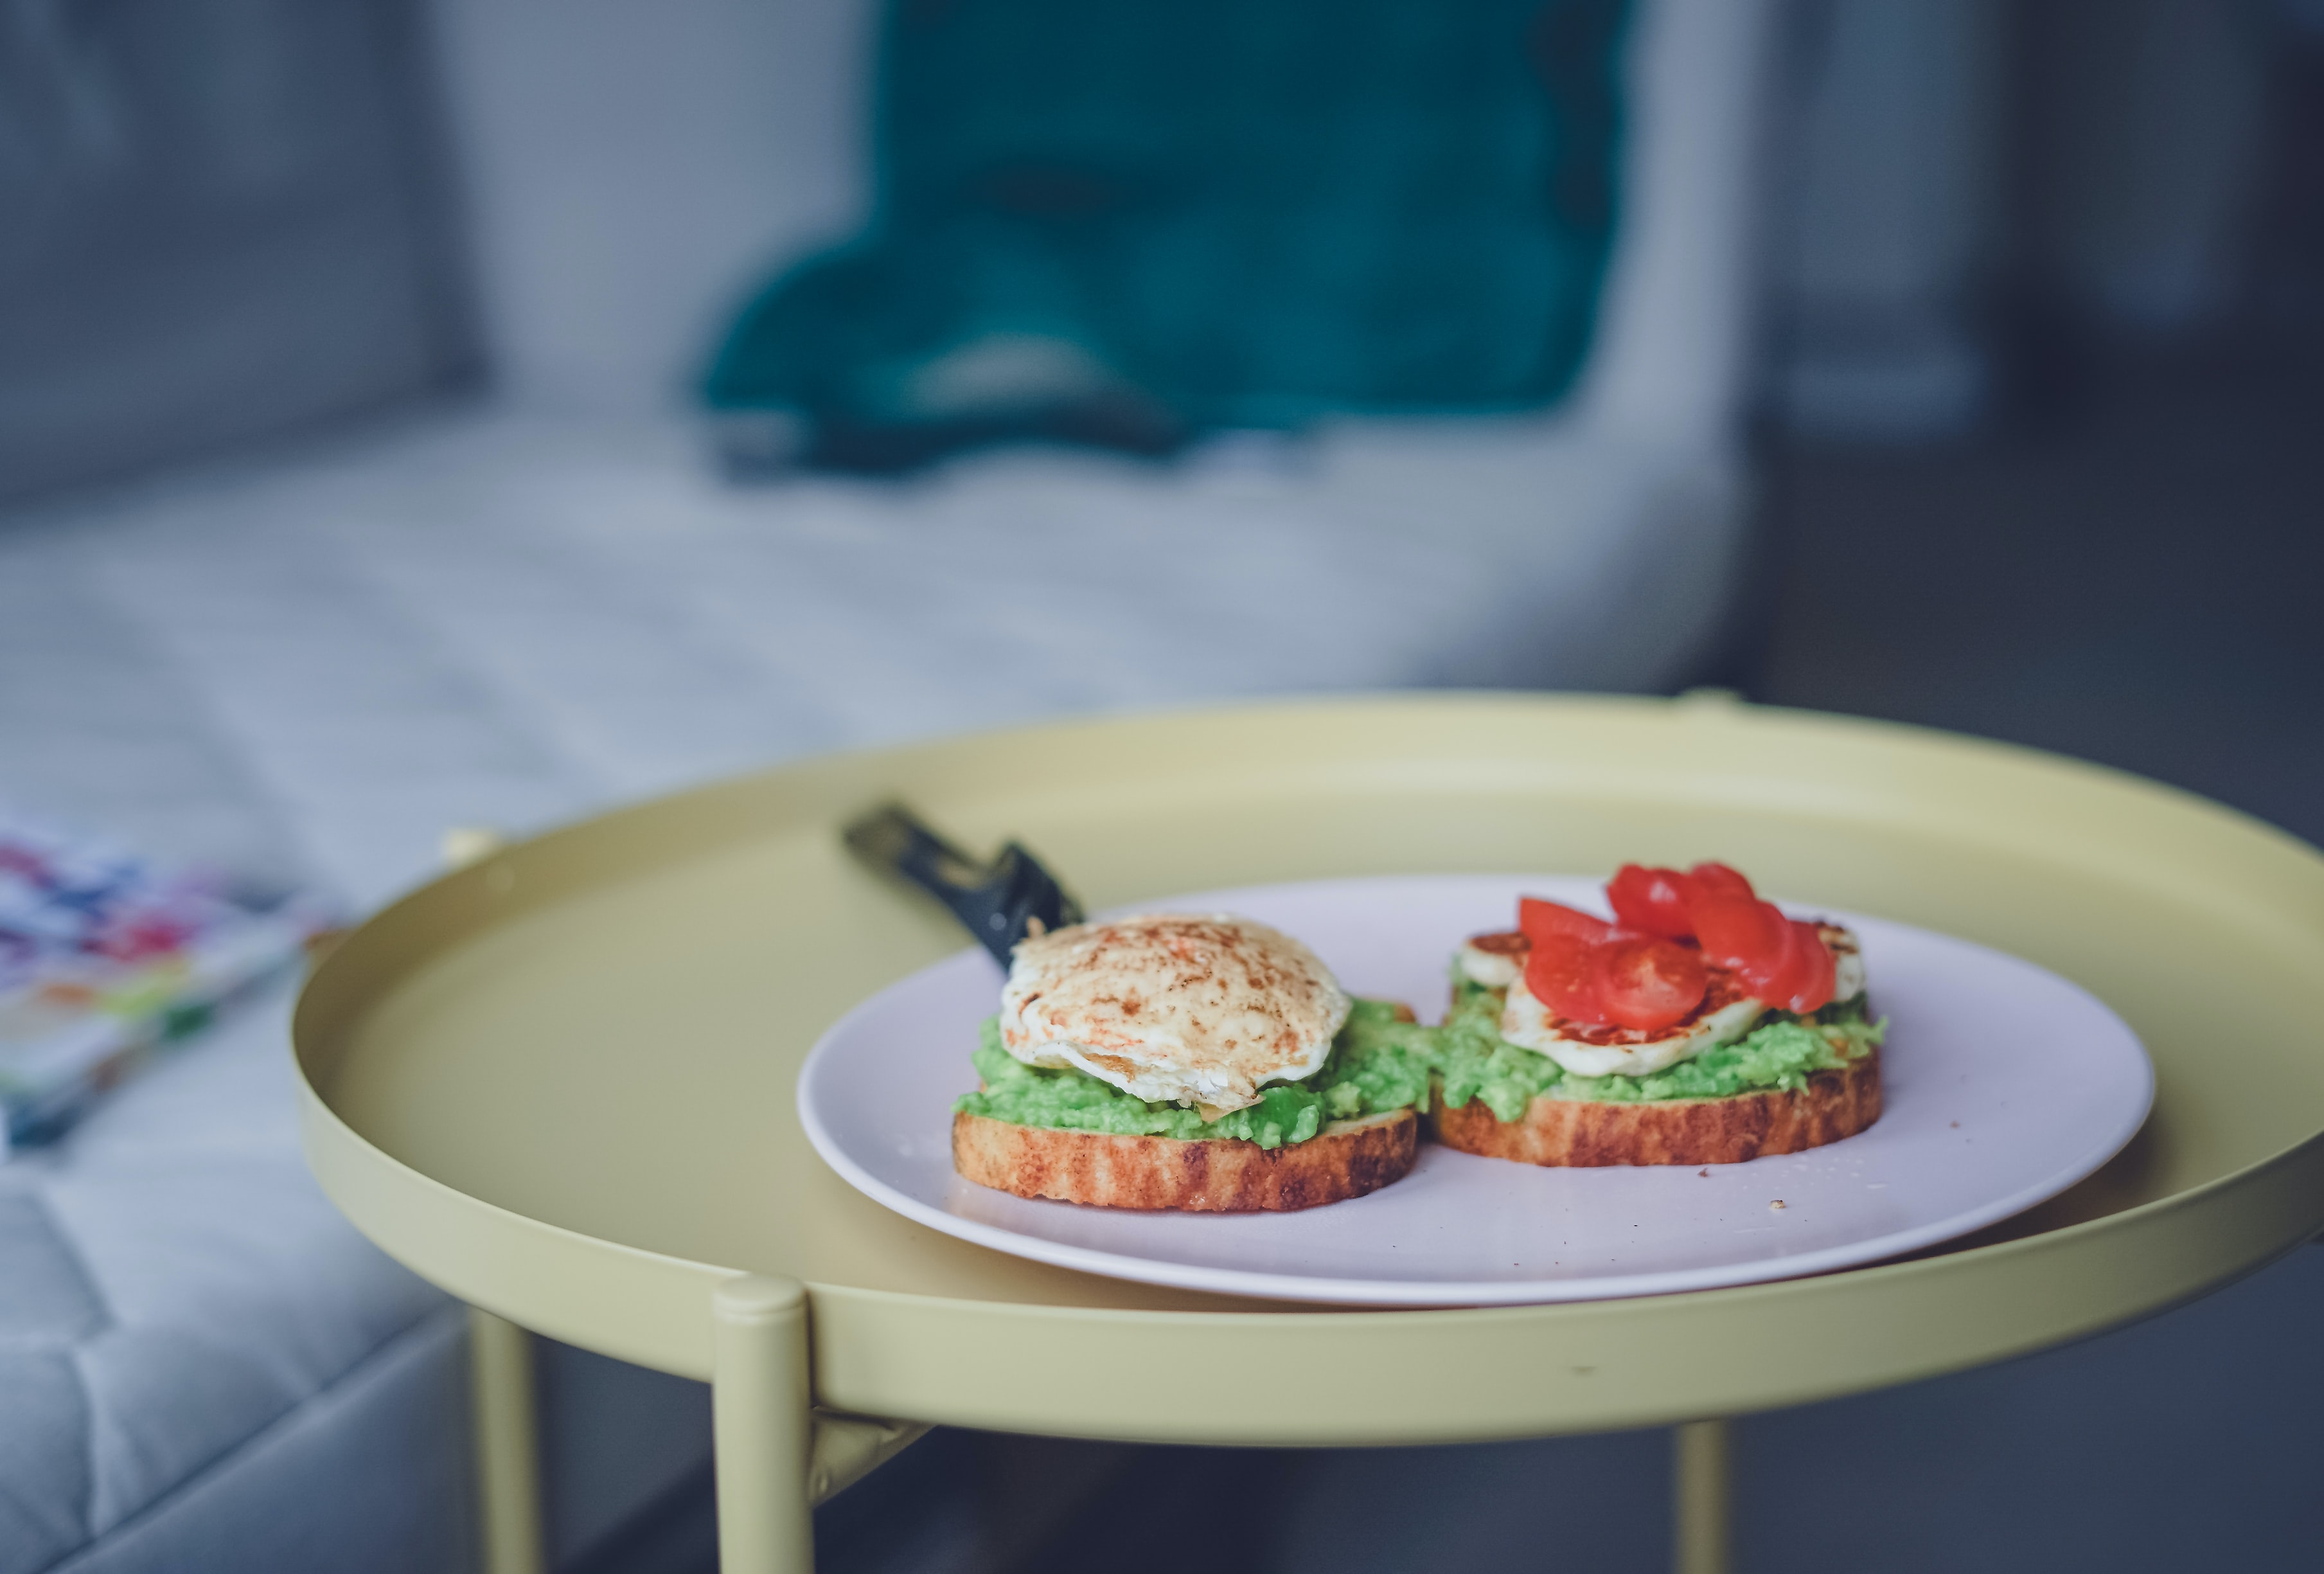 shallow focus photography of vegetable sandwich on plate